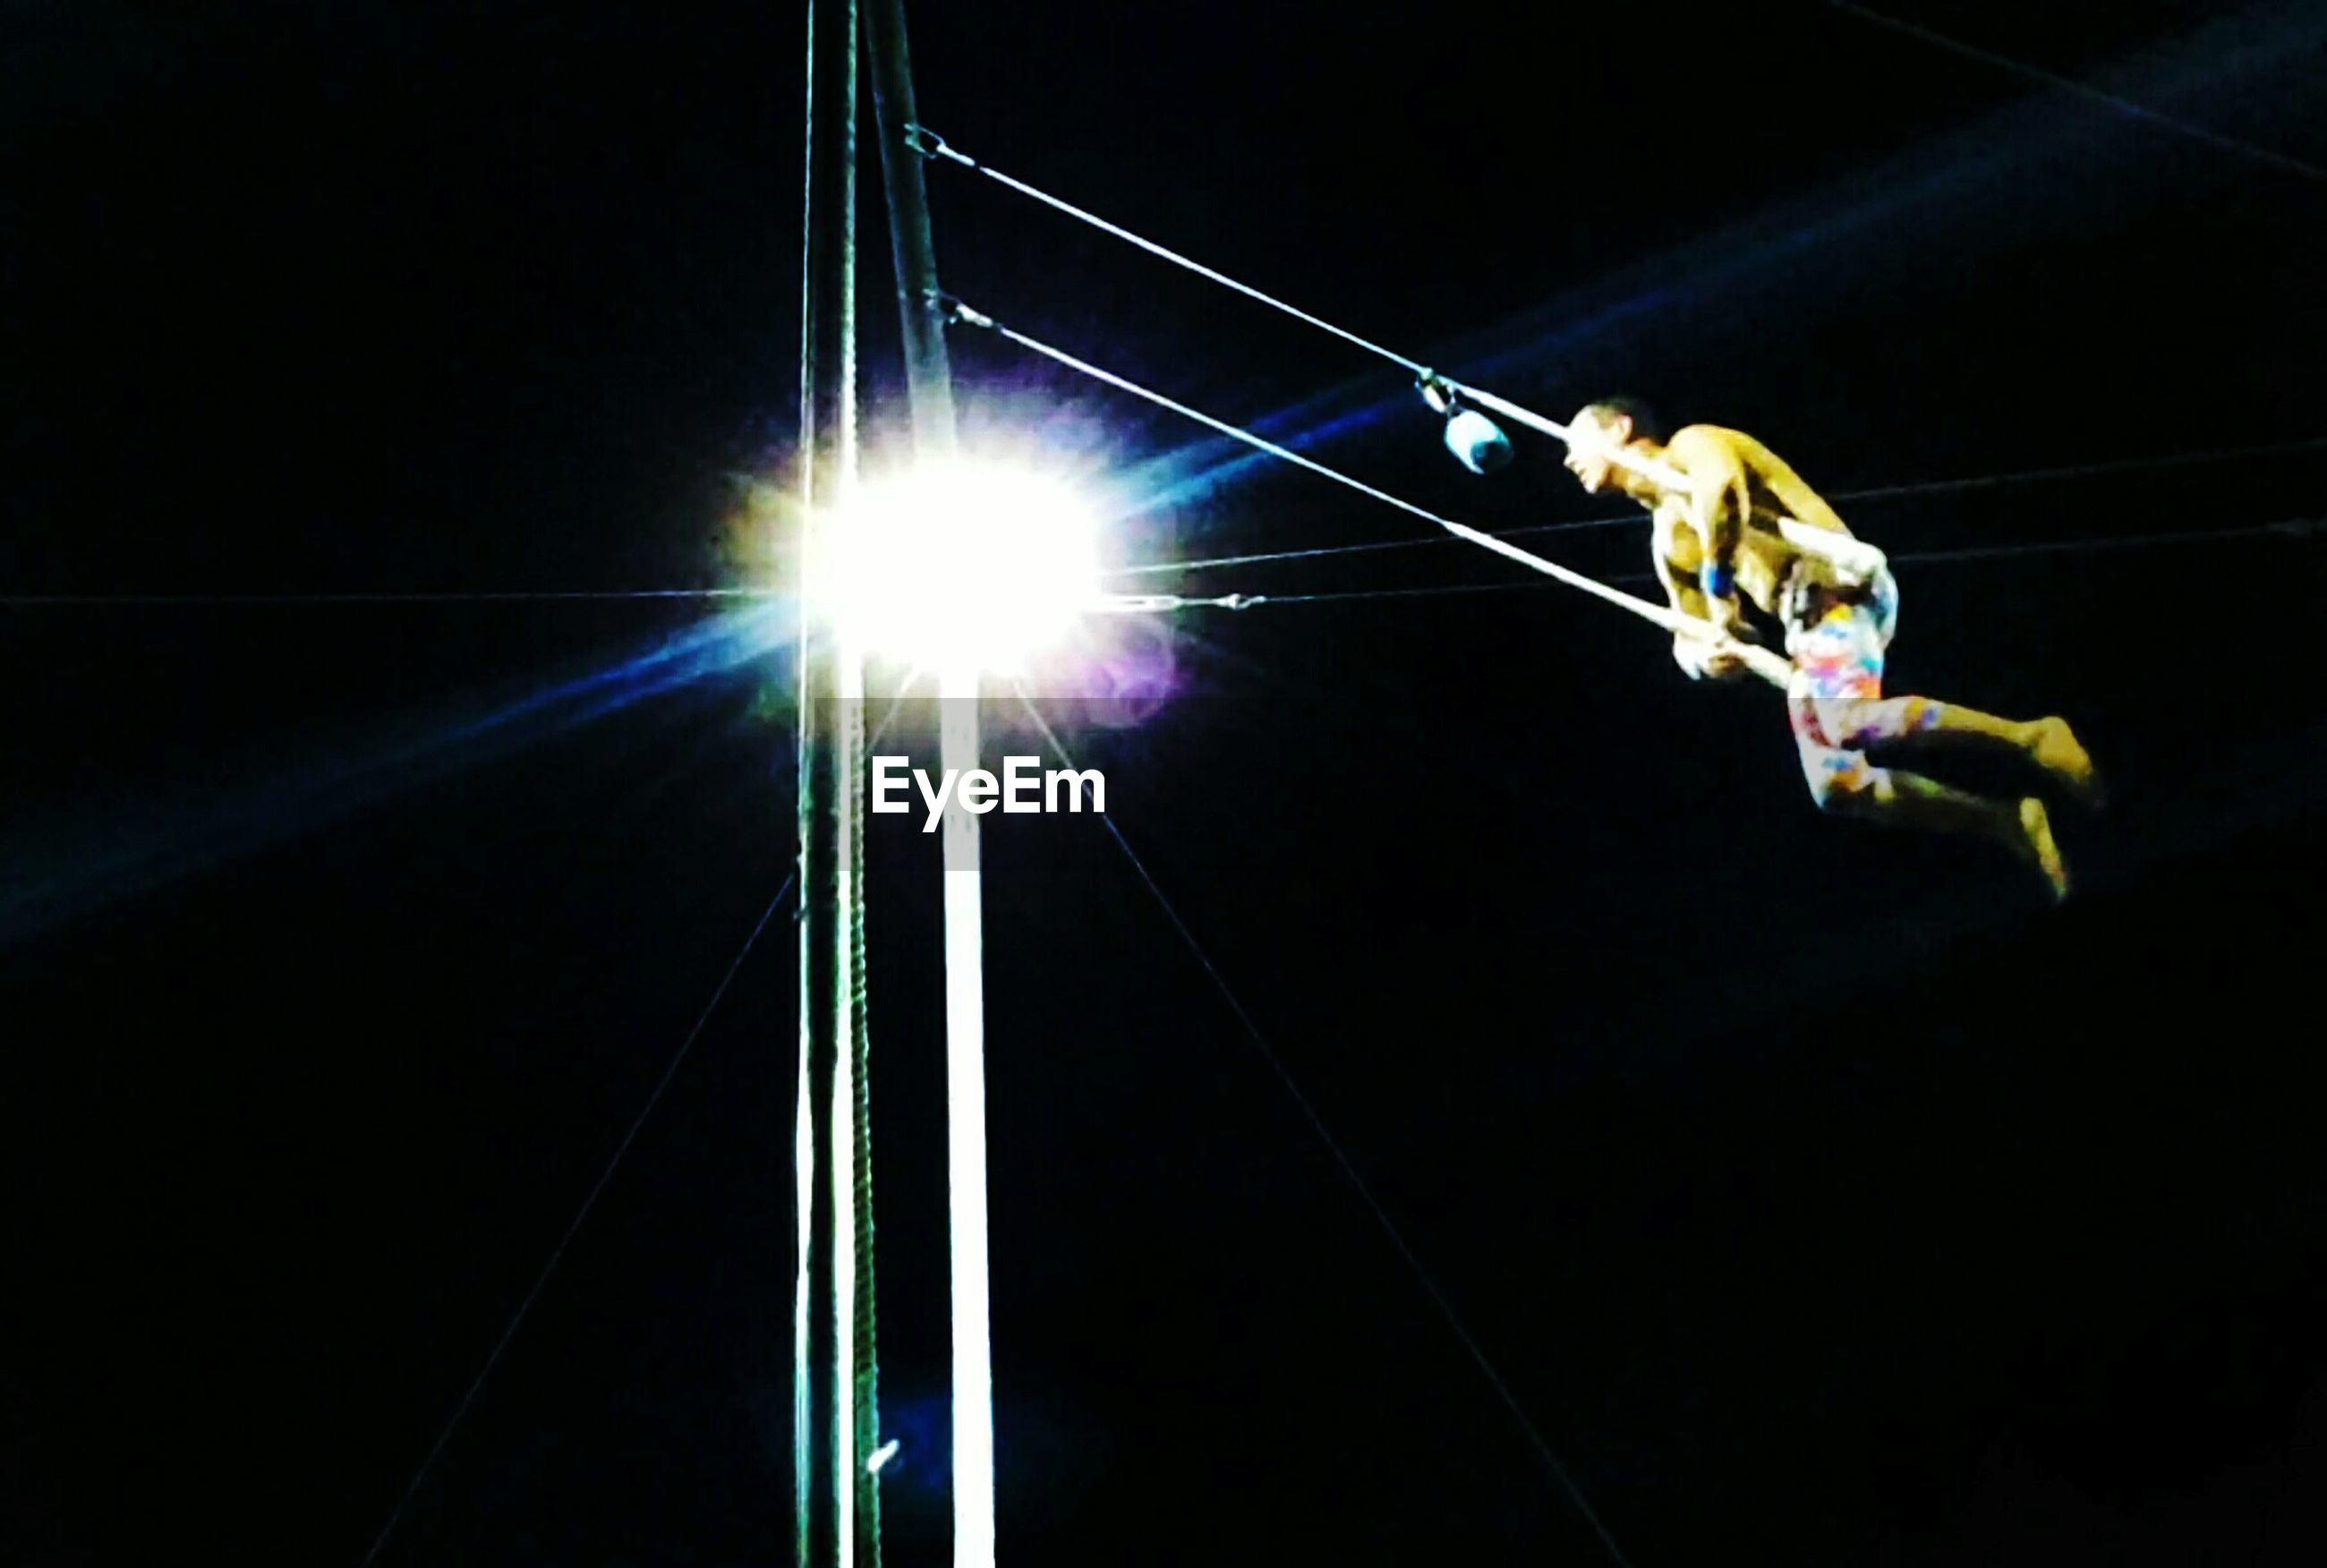 low angle view, night, illuminated, electricity, lighting equipment, light - natural phenomenon, street light, lens flare, glowing, clear sky, blue, transportation, cable, copy space, outdoors, no people, speed, connection, rope, motion